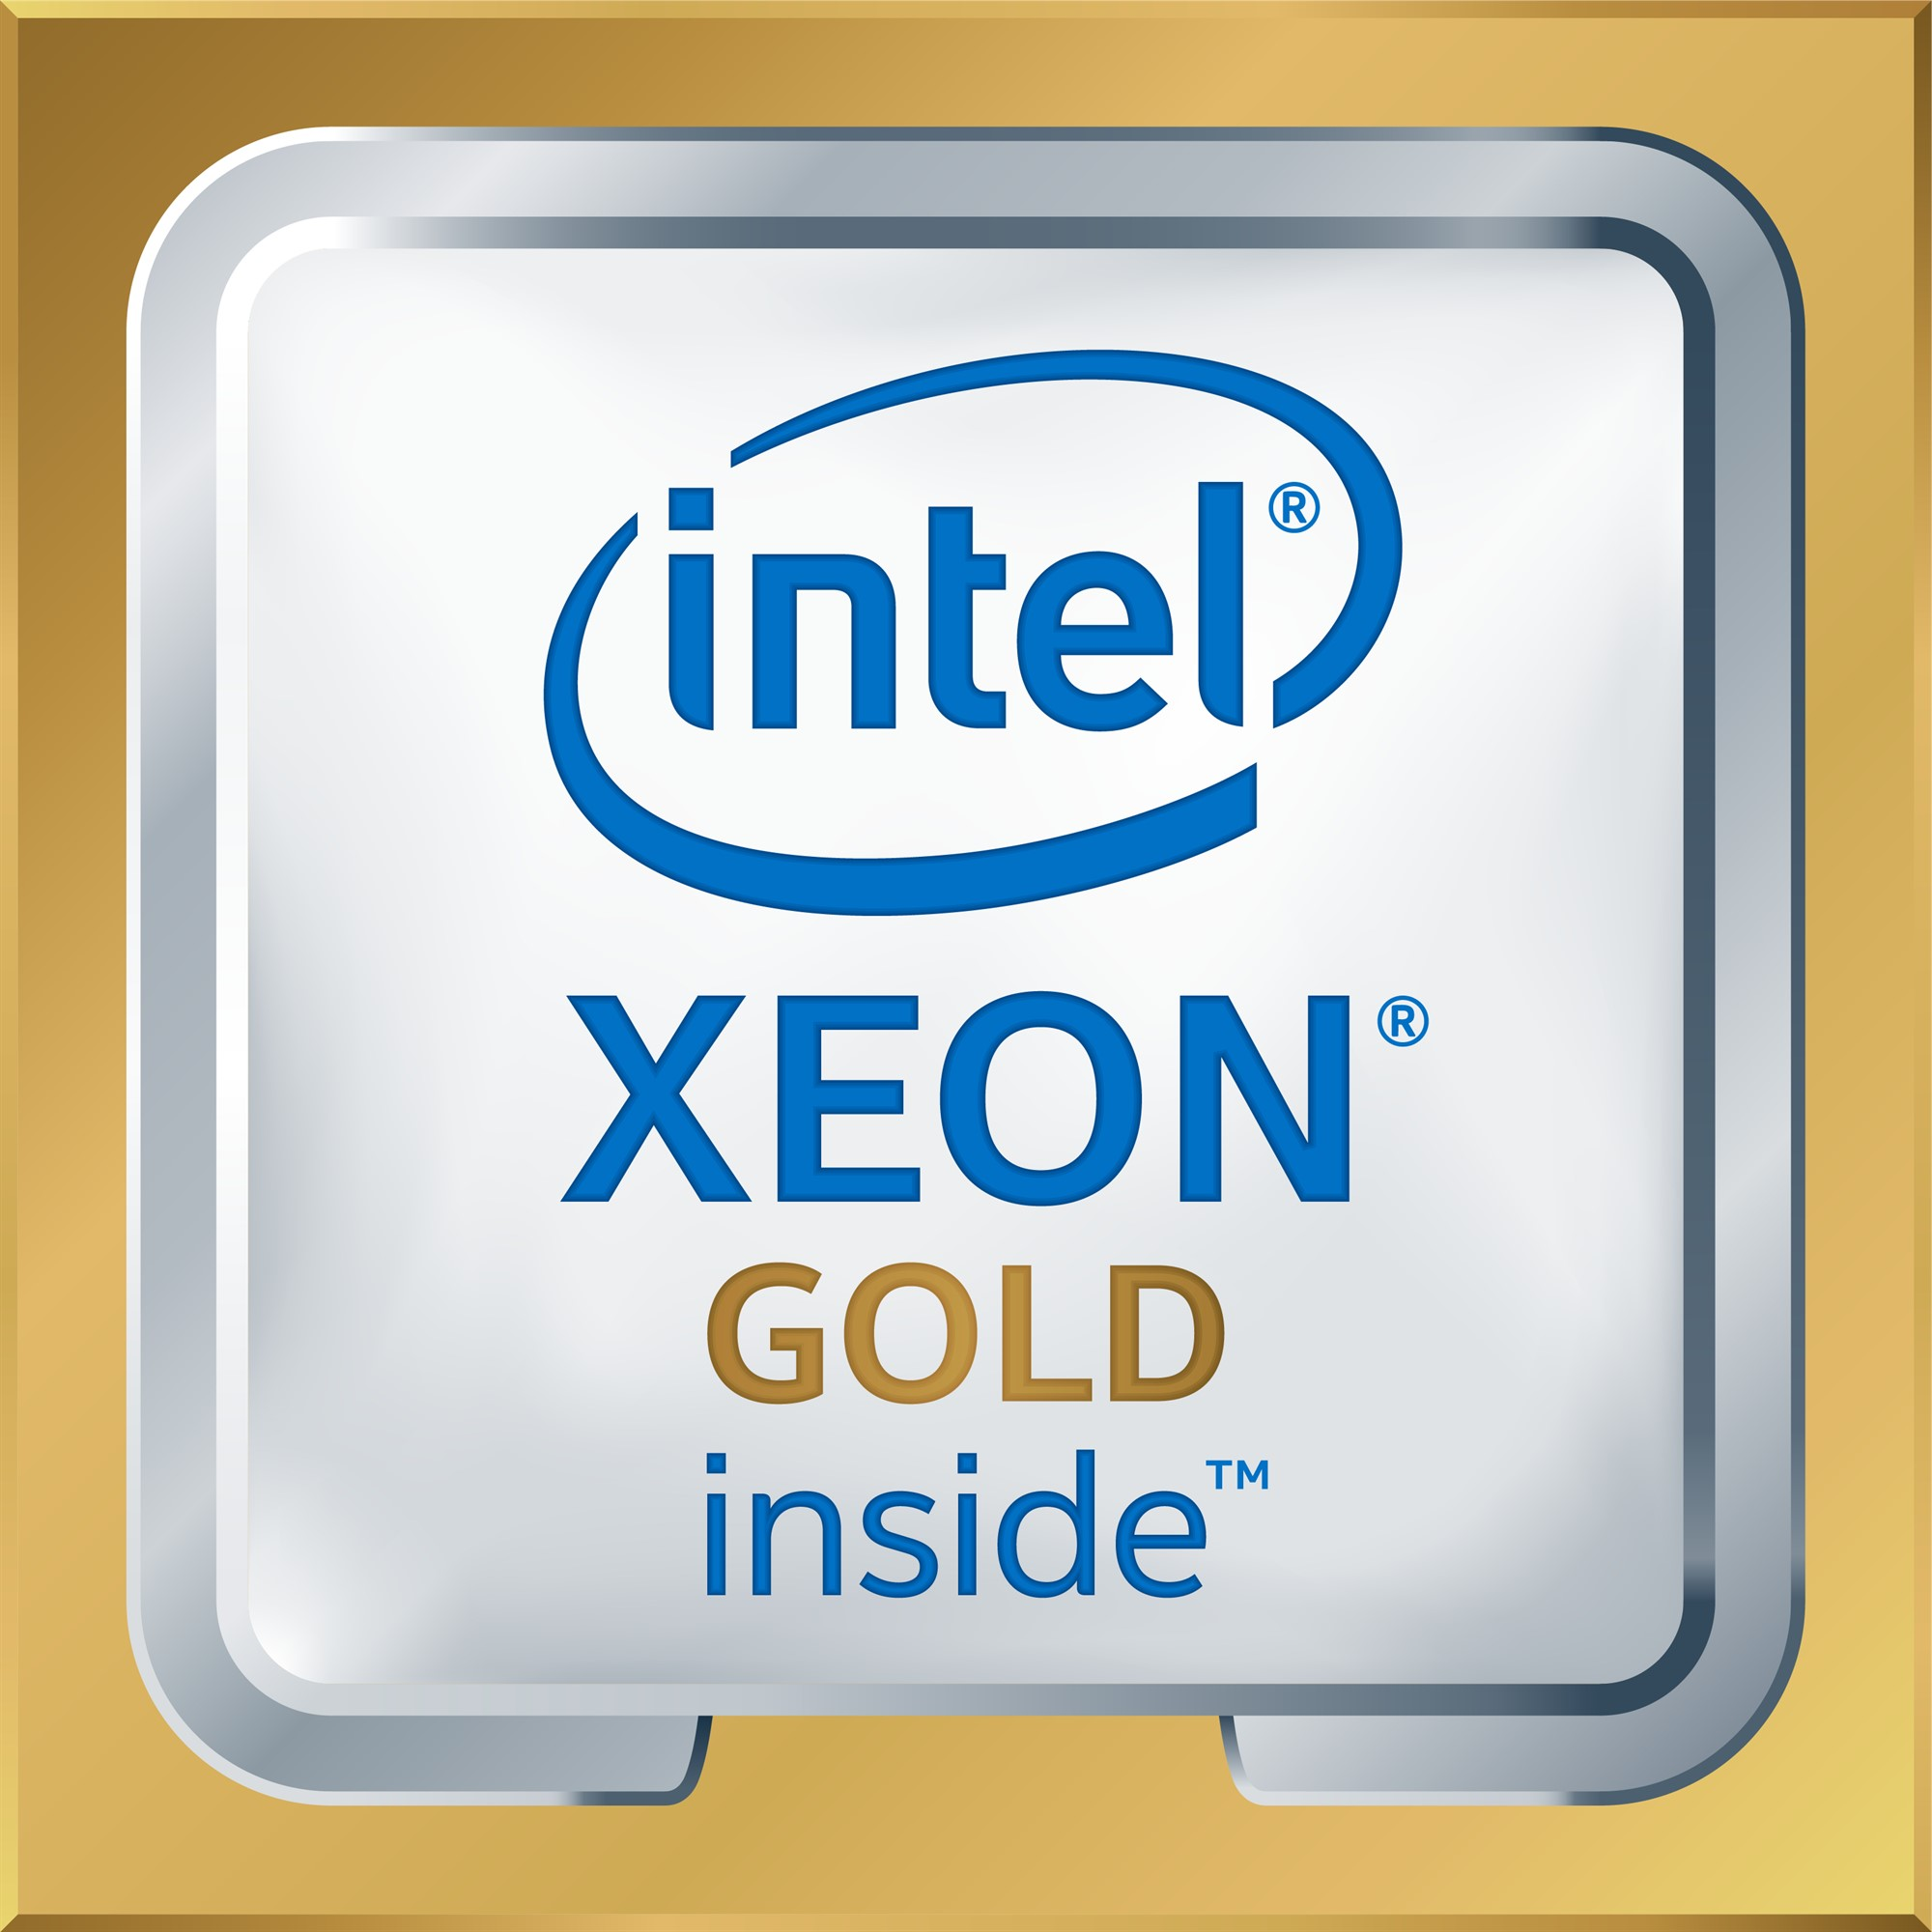 INTEL XEON GOLD 5120 PROCESSOR (19.25M CACHE, 2.20 GHZ) 2.20GHZ 19.3MB L3 BOX